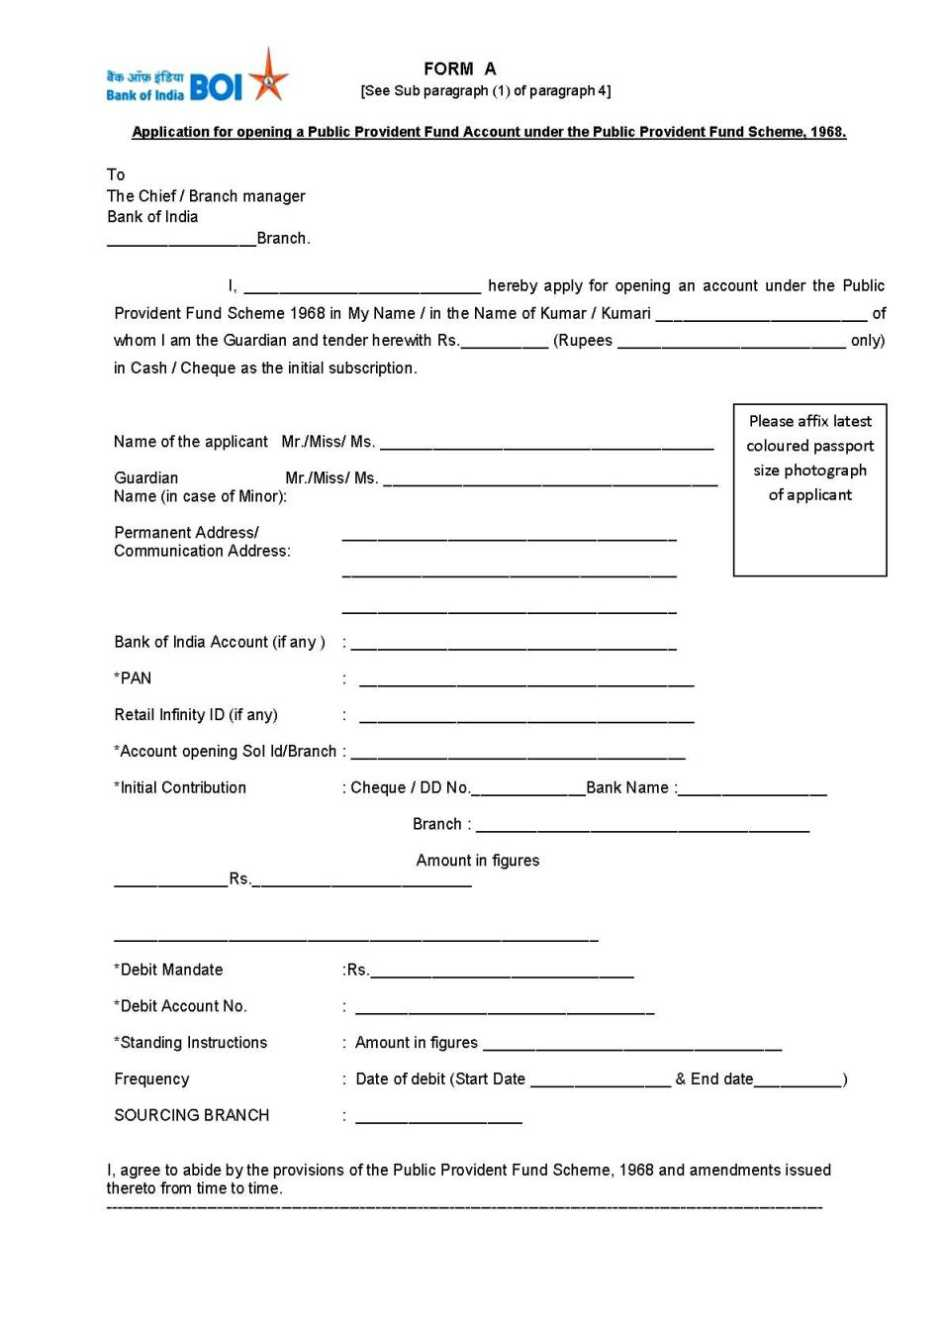 Bank Of India Application Form Download - 2018-2019 StudyChaCha Application Form For Bank Of India on bank proof of payment, bank of america employment application, not responsible form, bank regulations, bank paperwork, bank companies, bank management, bank welcome letter, bank annual report, bank request letter, bank insurance, bank window, bank loan application, bank signature card, bank client, bank acceptance letter, bank loan officer, bank application letter, bank forms templates, credit report dispute form,